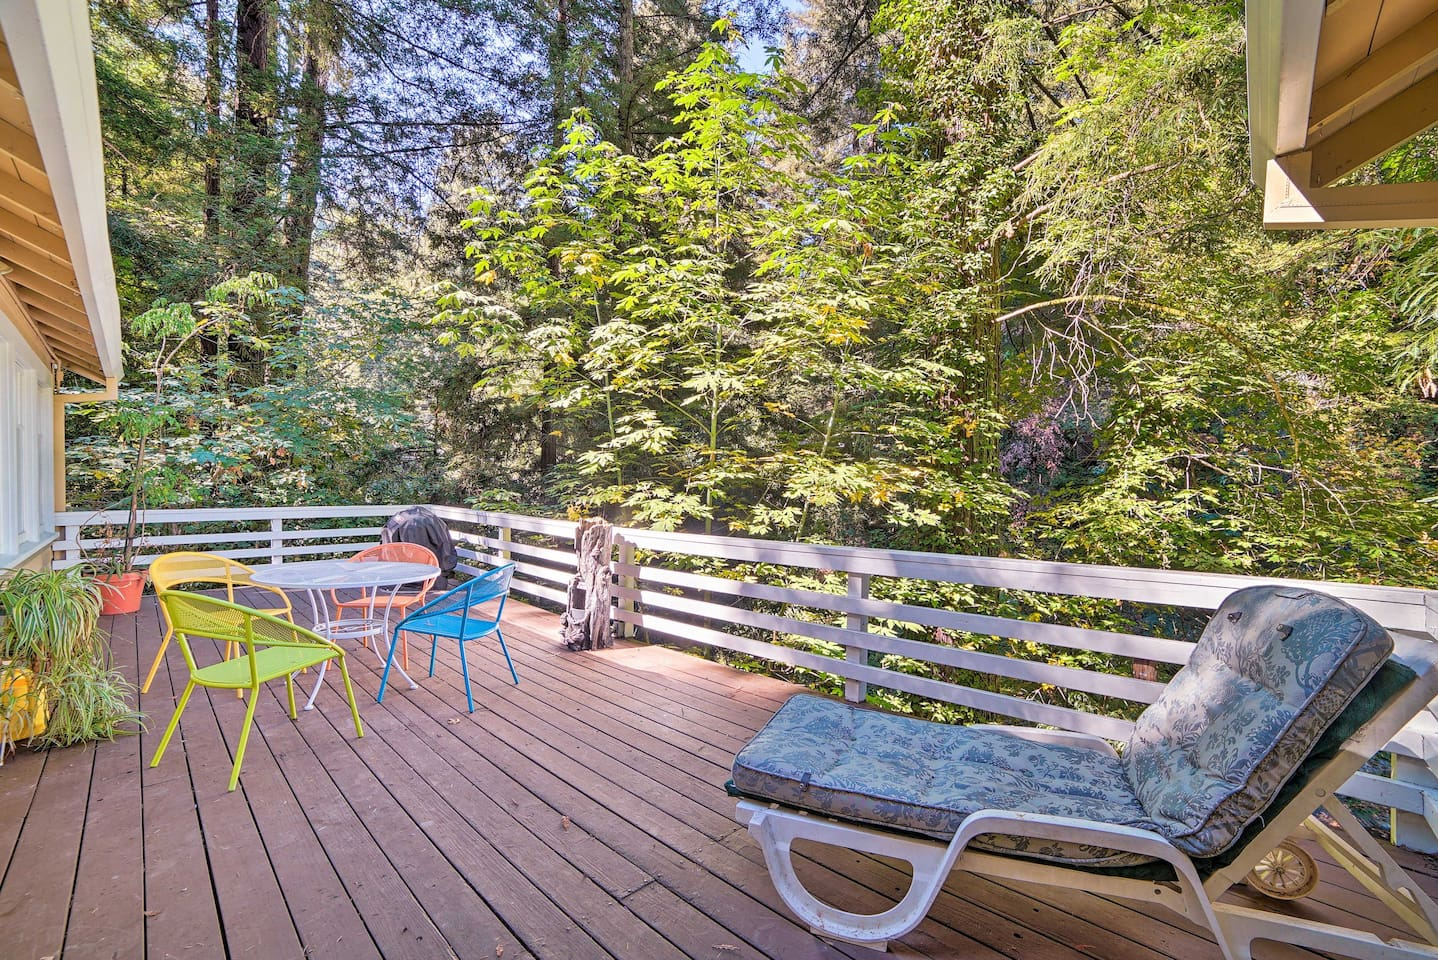 Call this vacation rental cottage in Ben Lomond your home-away-from-home.